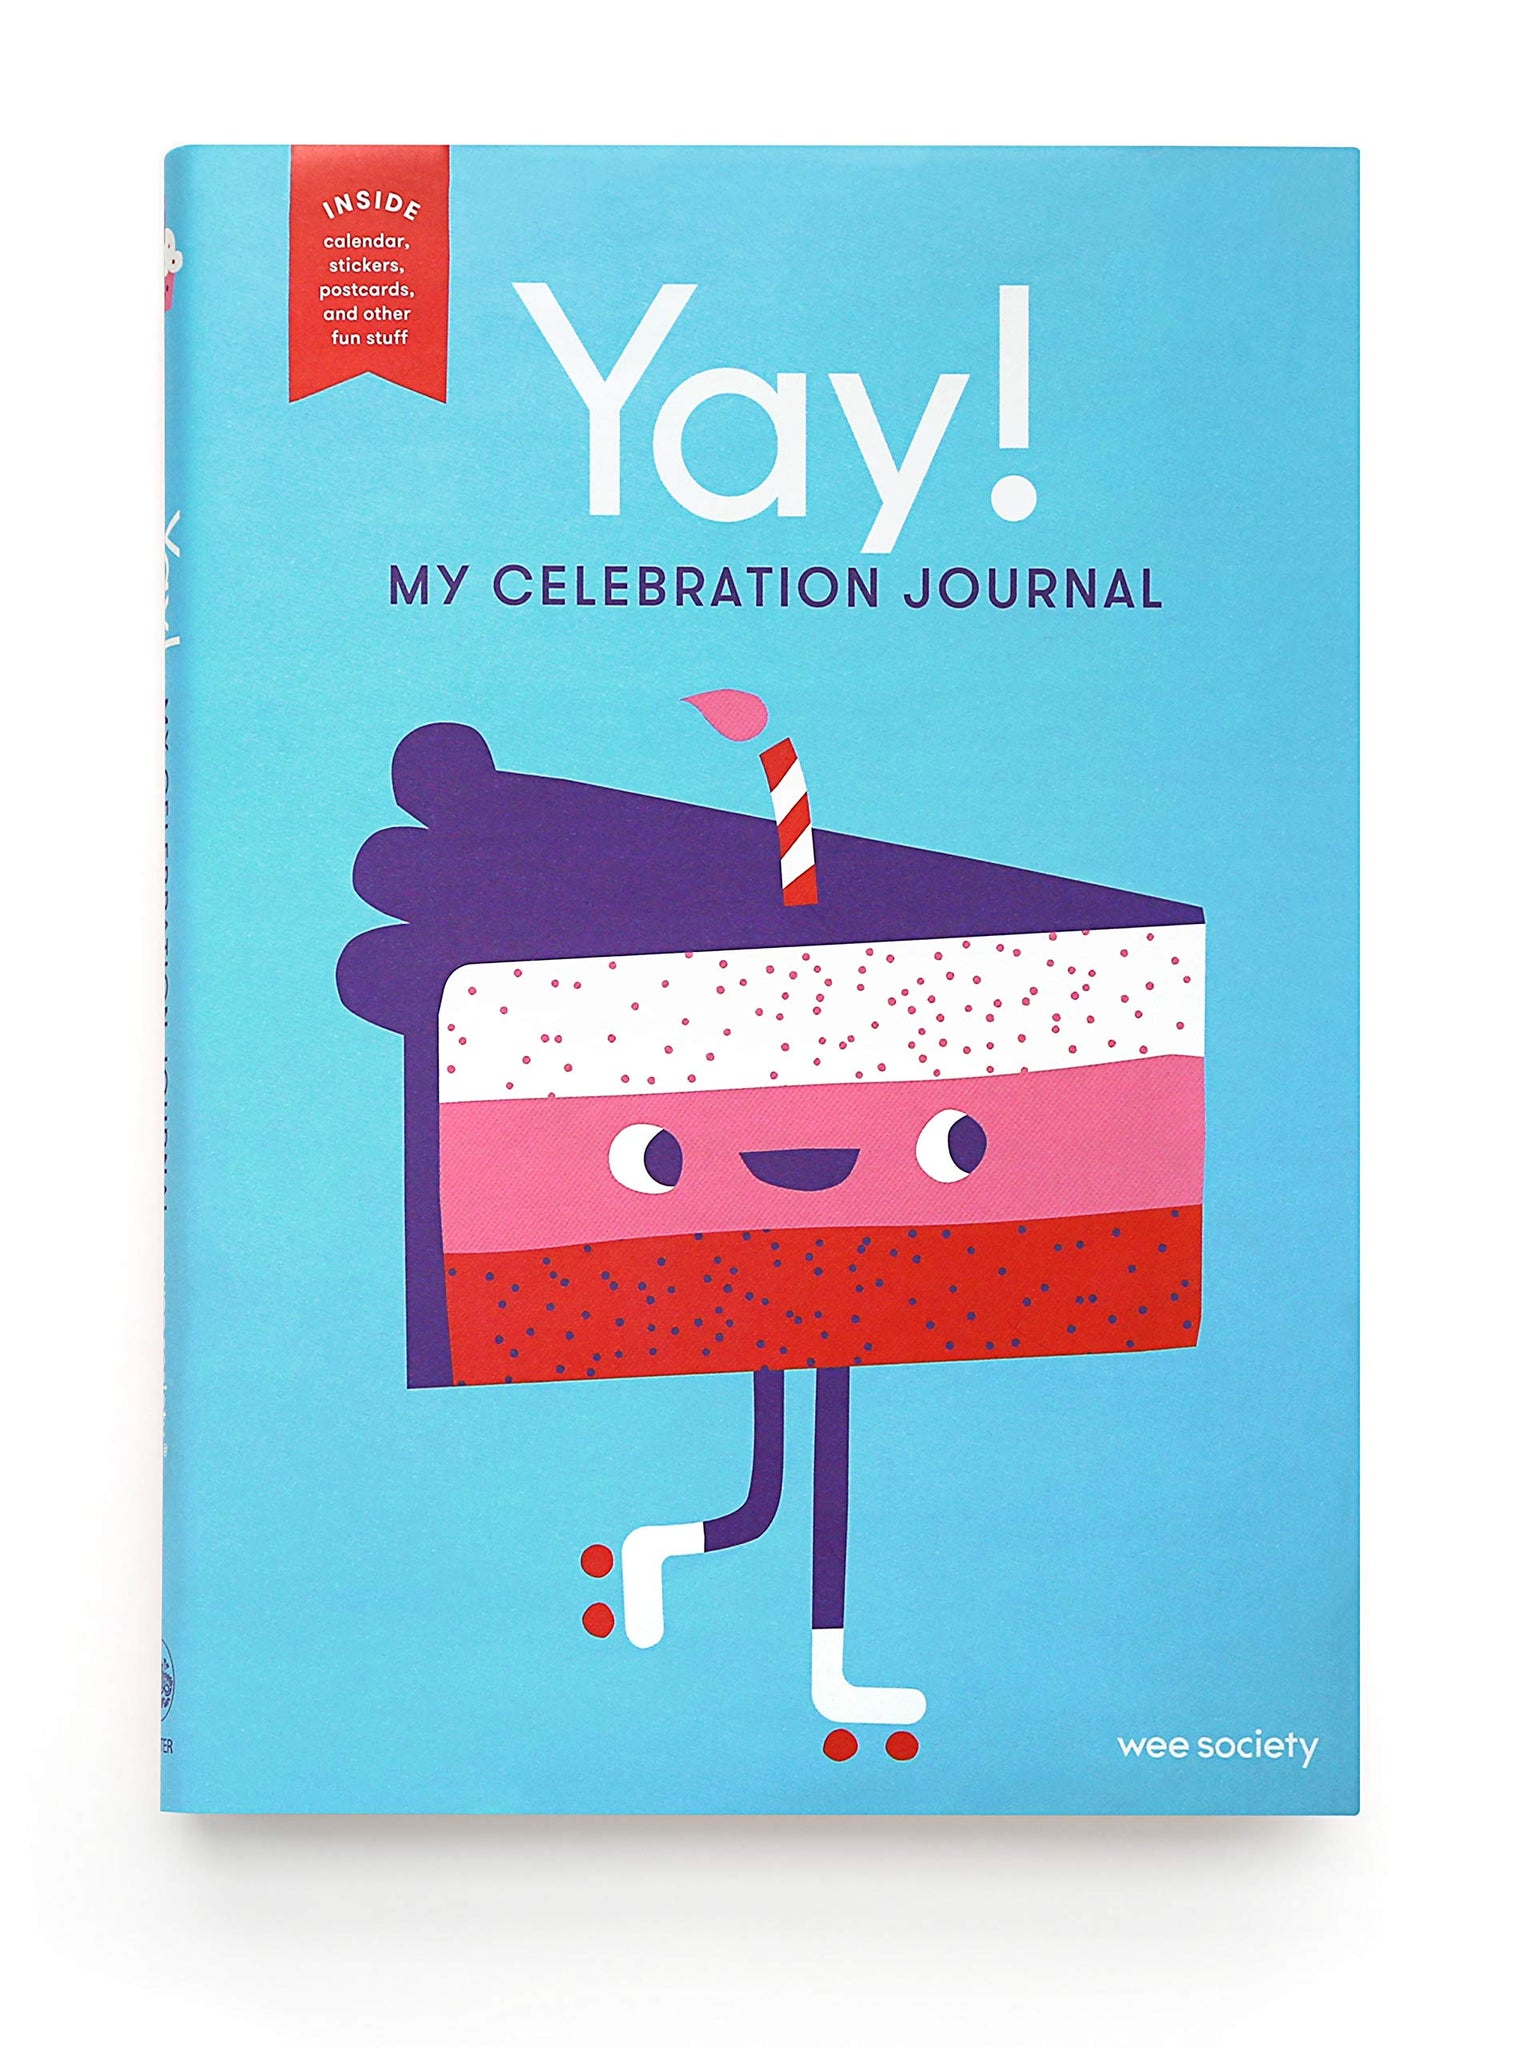 Yay! My Celebration Journal